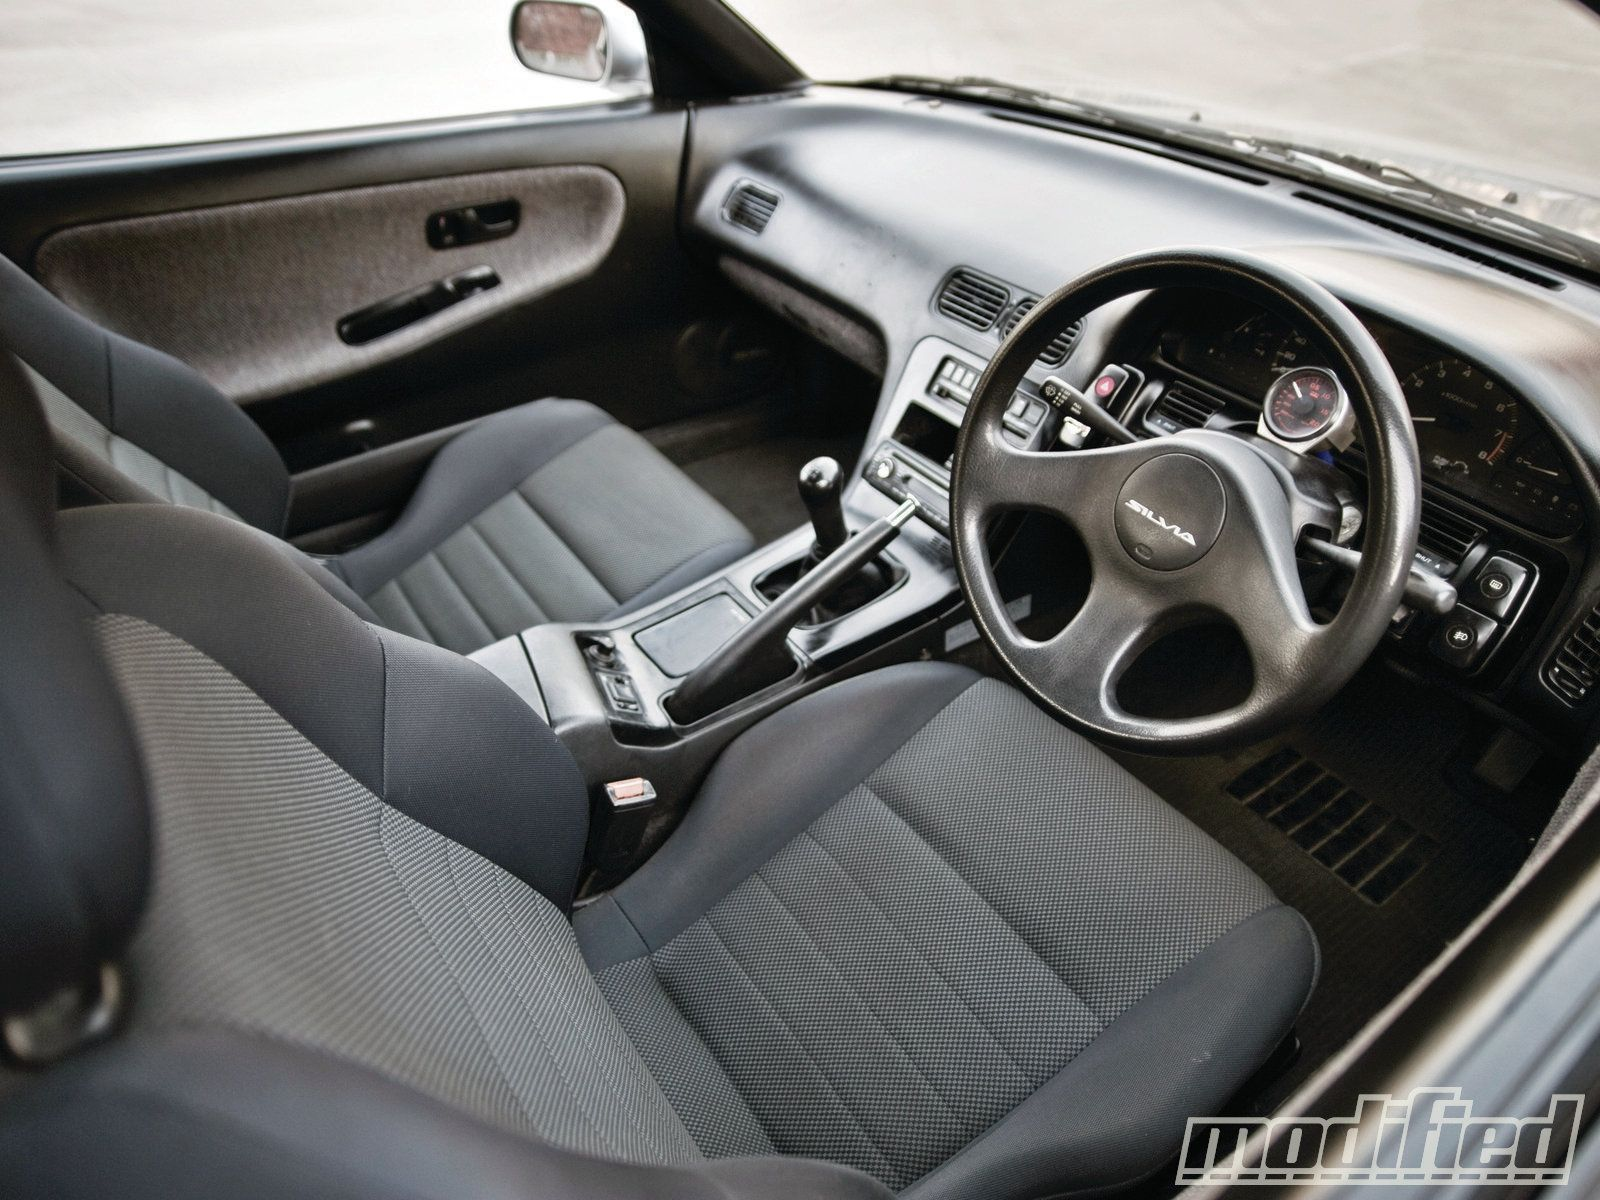 Right Hand Drive Cars for Sale Near Me New Jdm Right Hand Drive Cars for Sale Skylines Supras Rx7 180sx